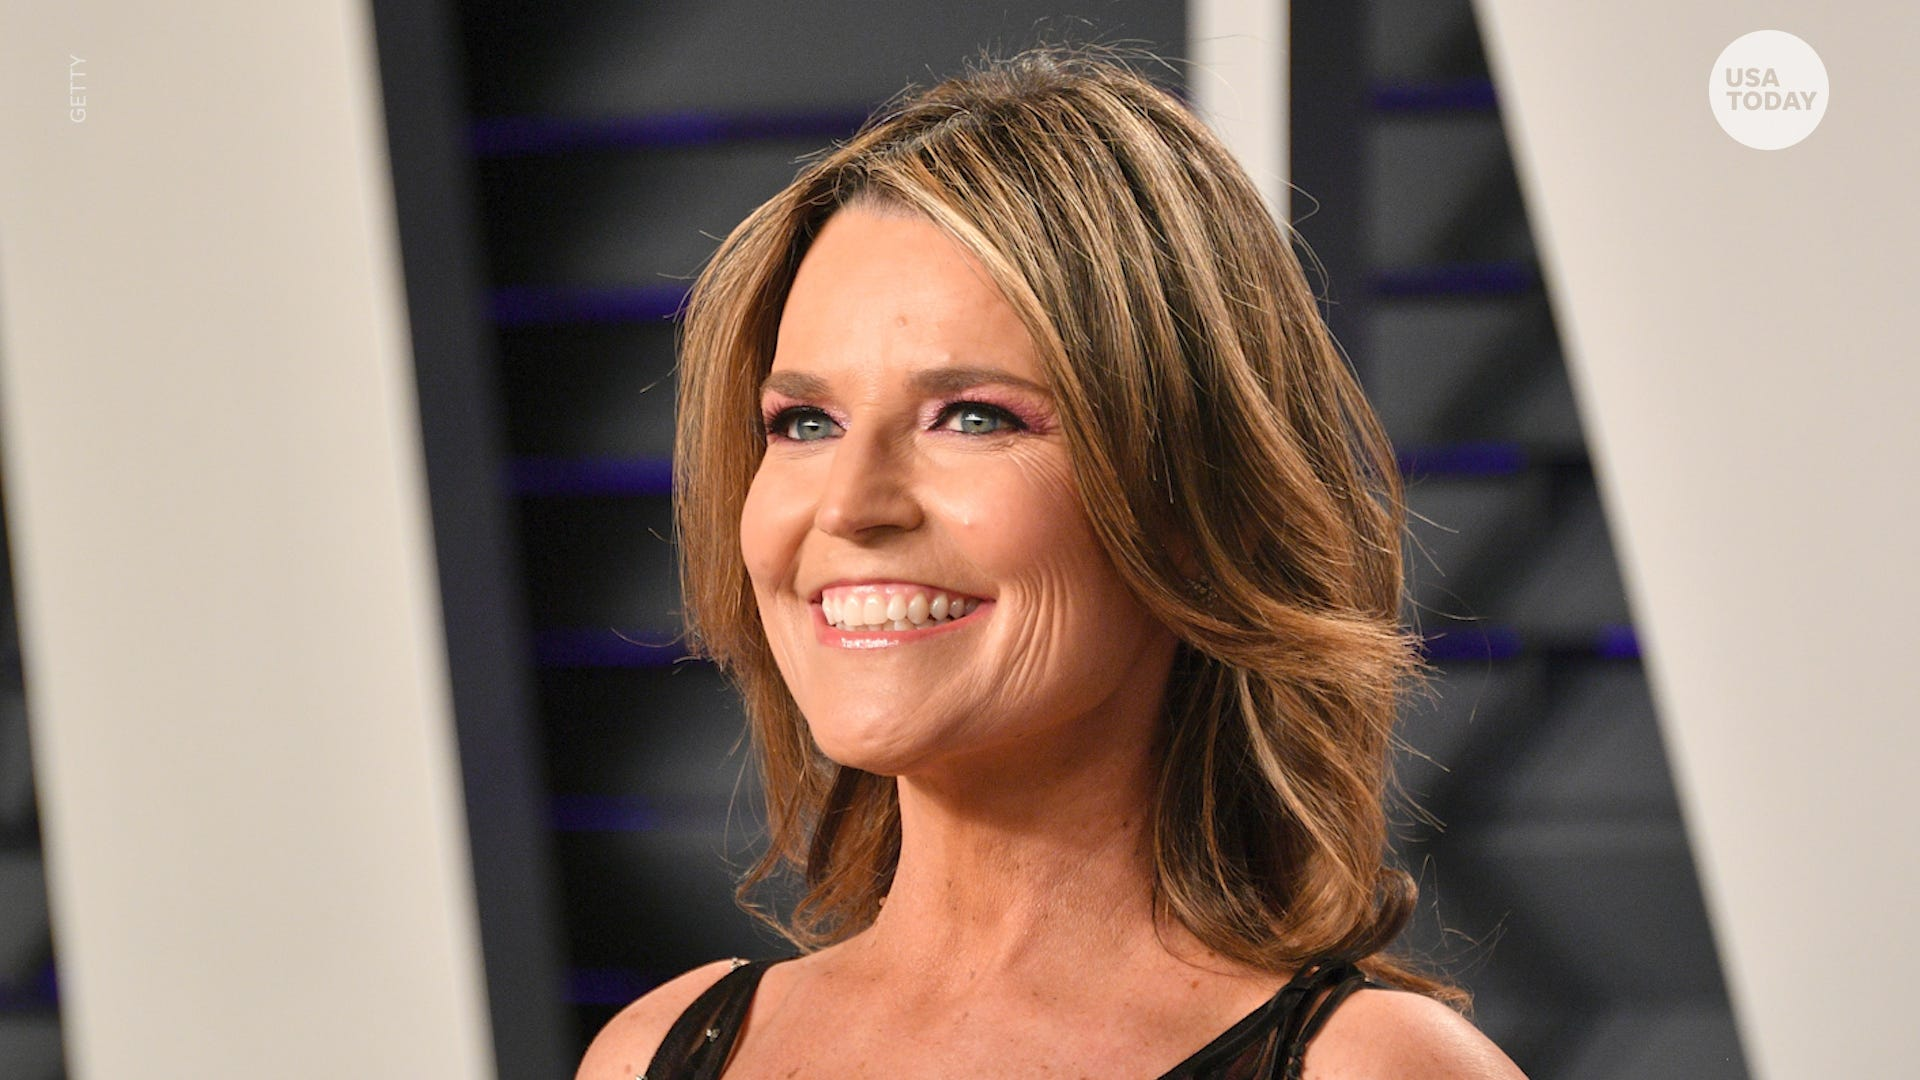 Savannah Guthrie Says Vision Is Blurry But Improving After Eye Injury